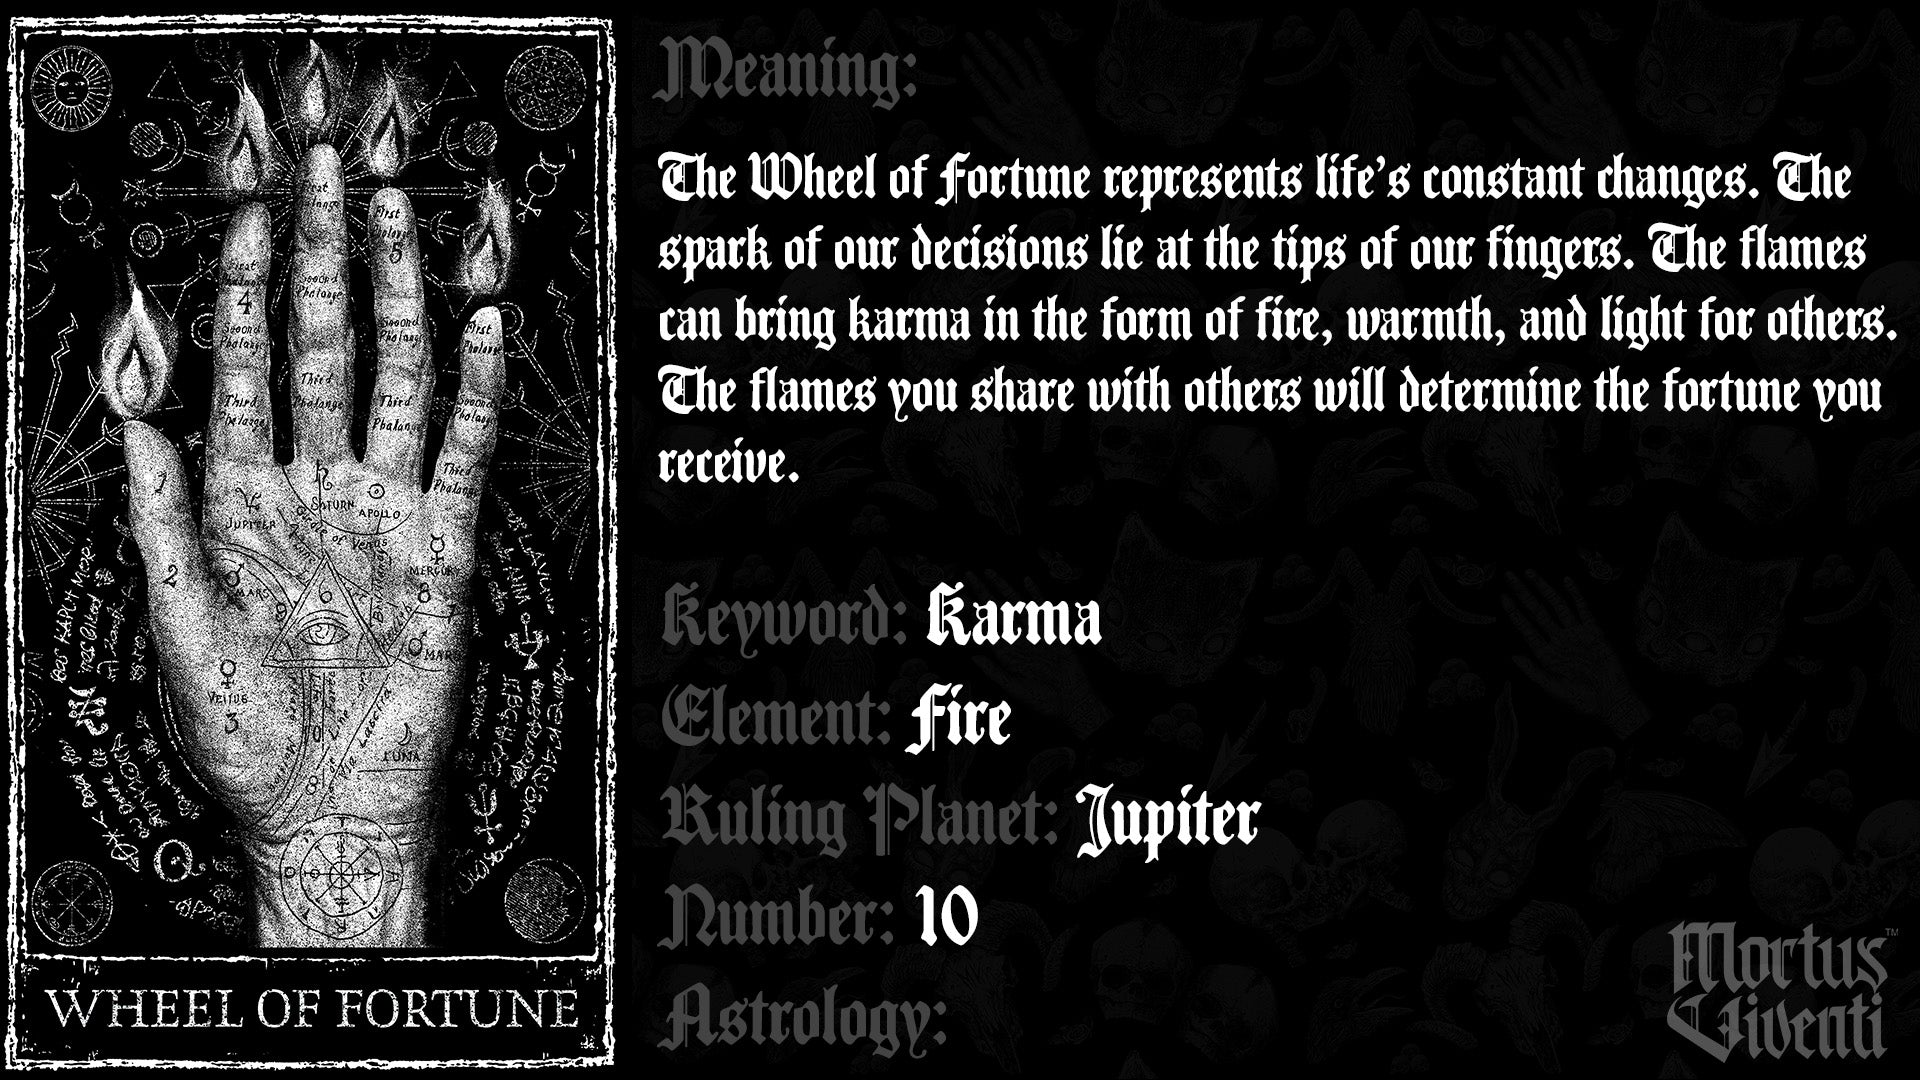 Wheel of Fortune Tarot Card Meaning Mortus Viventi